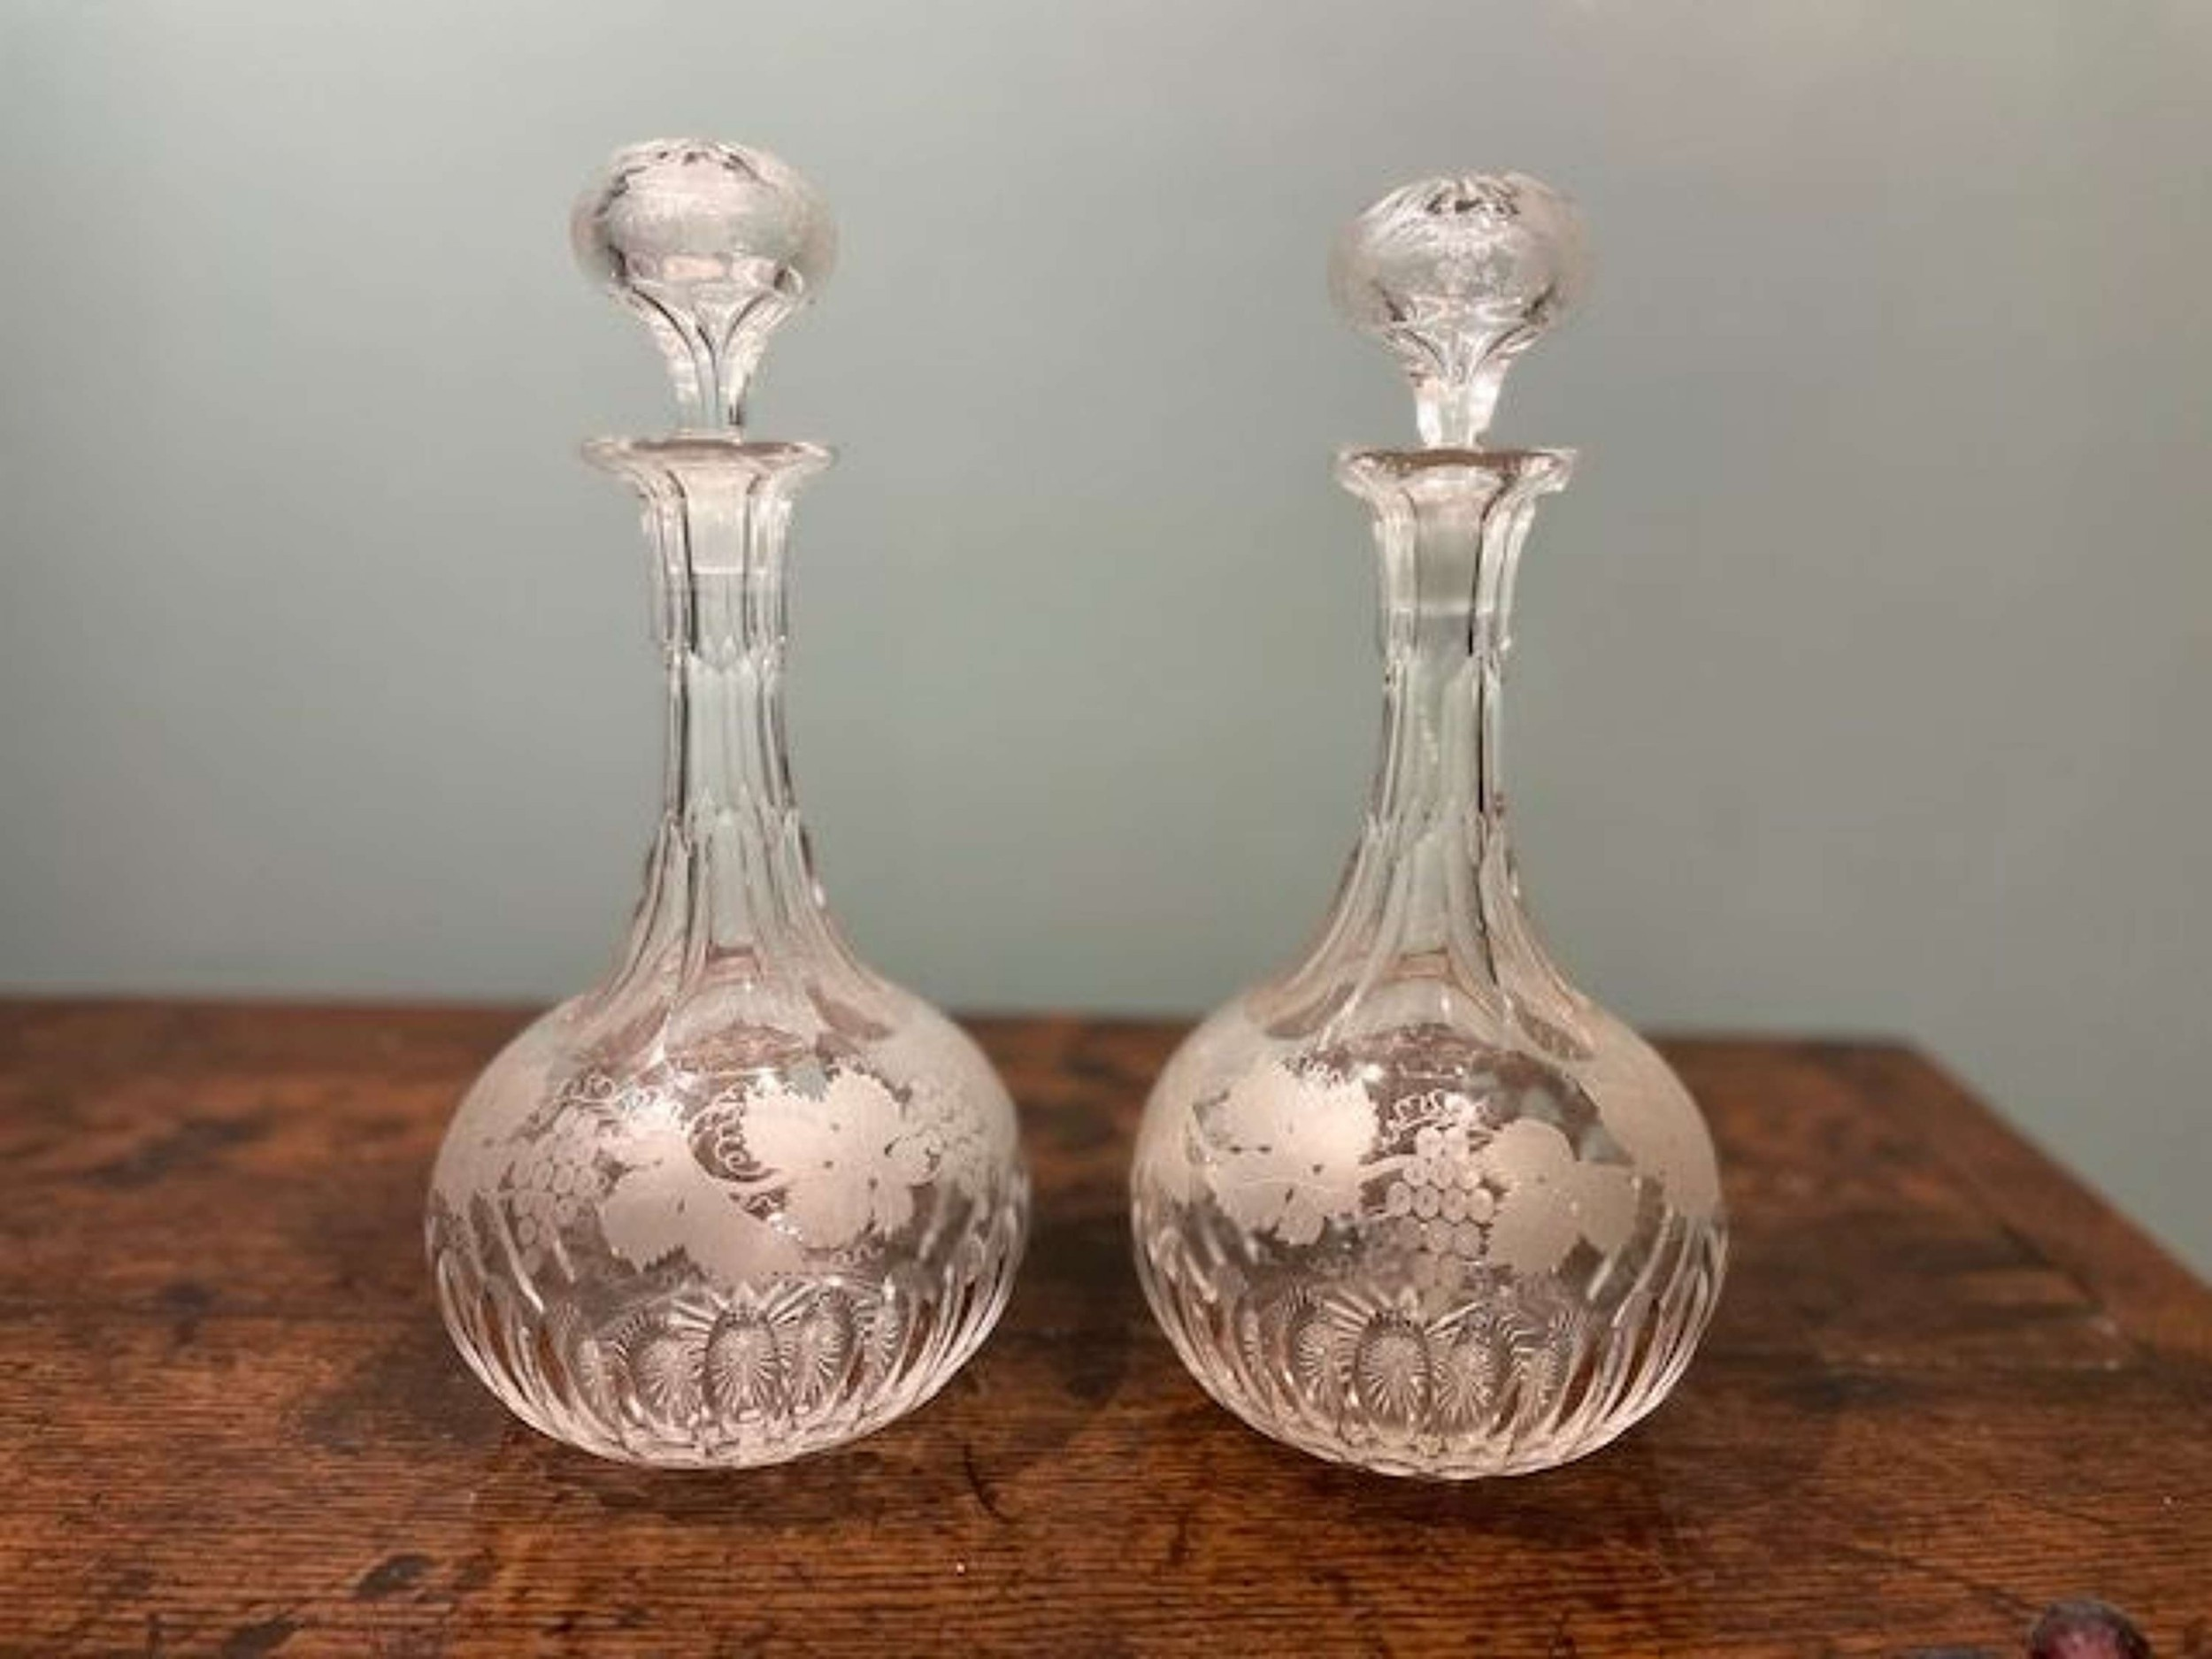 pair of mid 19th c shaft globe decanters with grapevine motifs